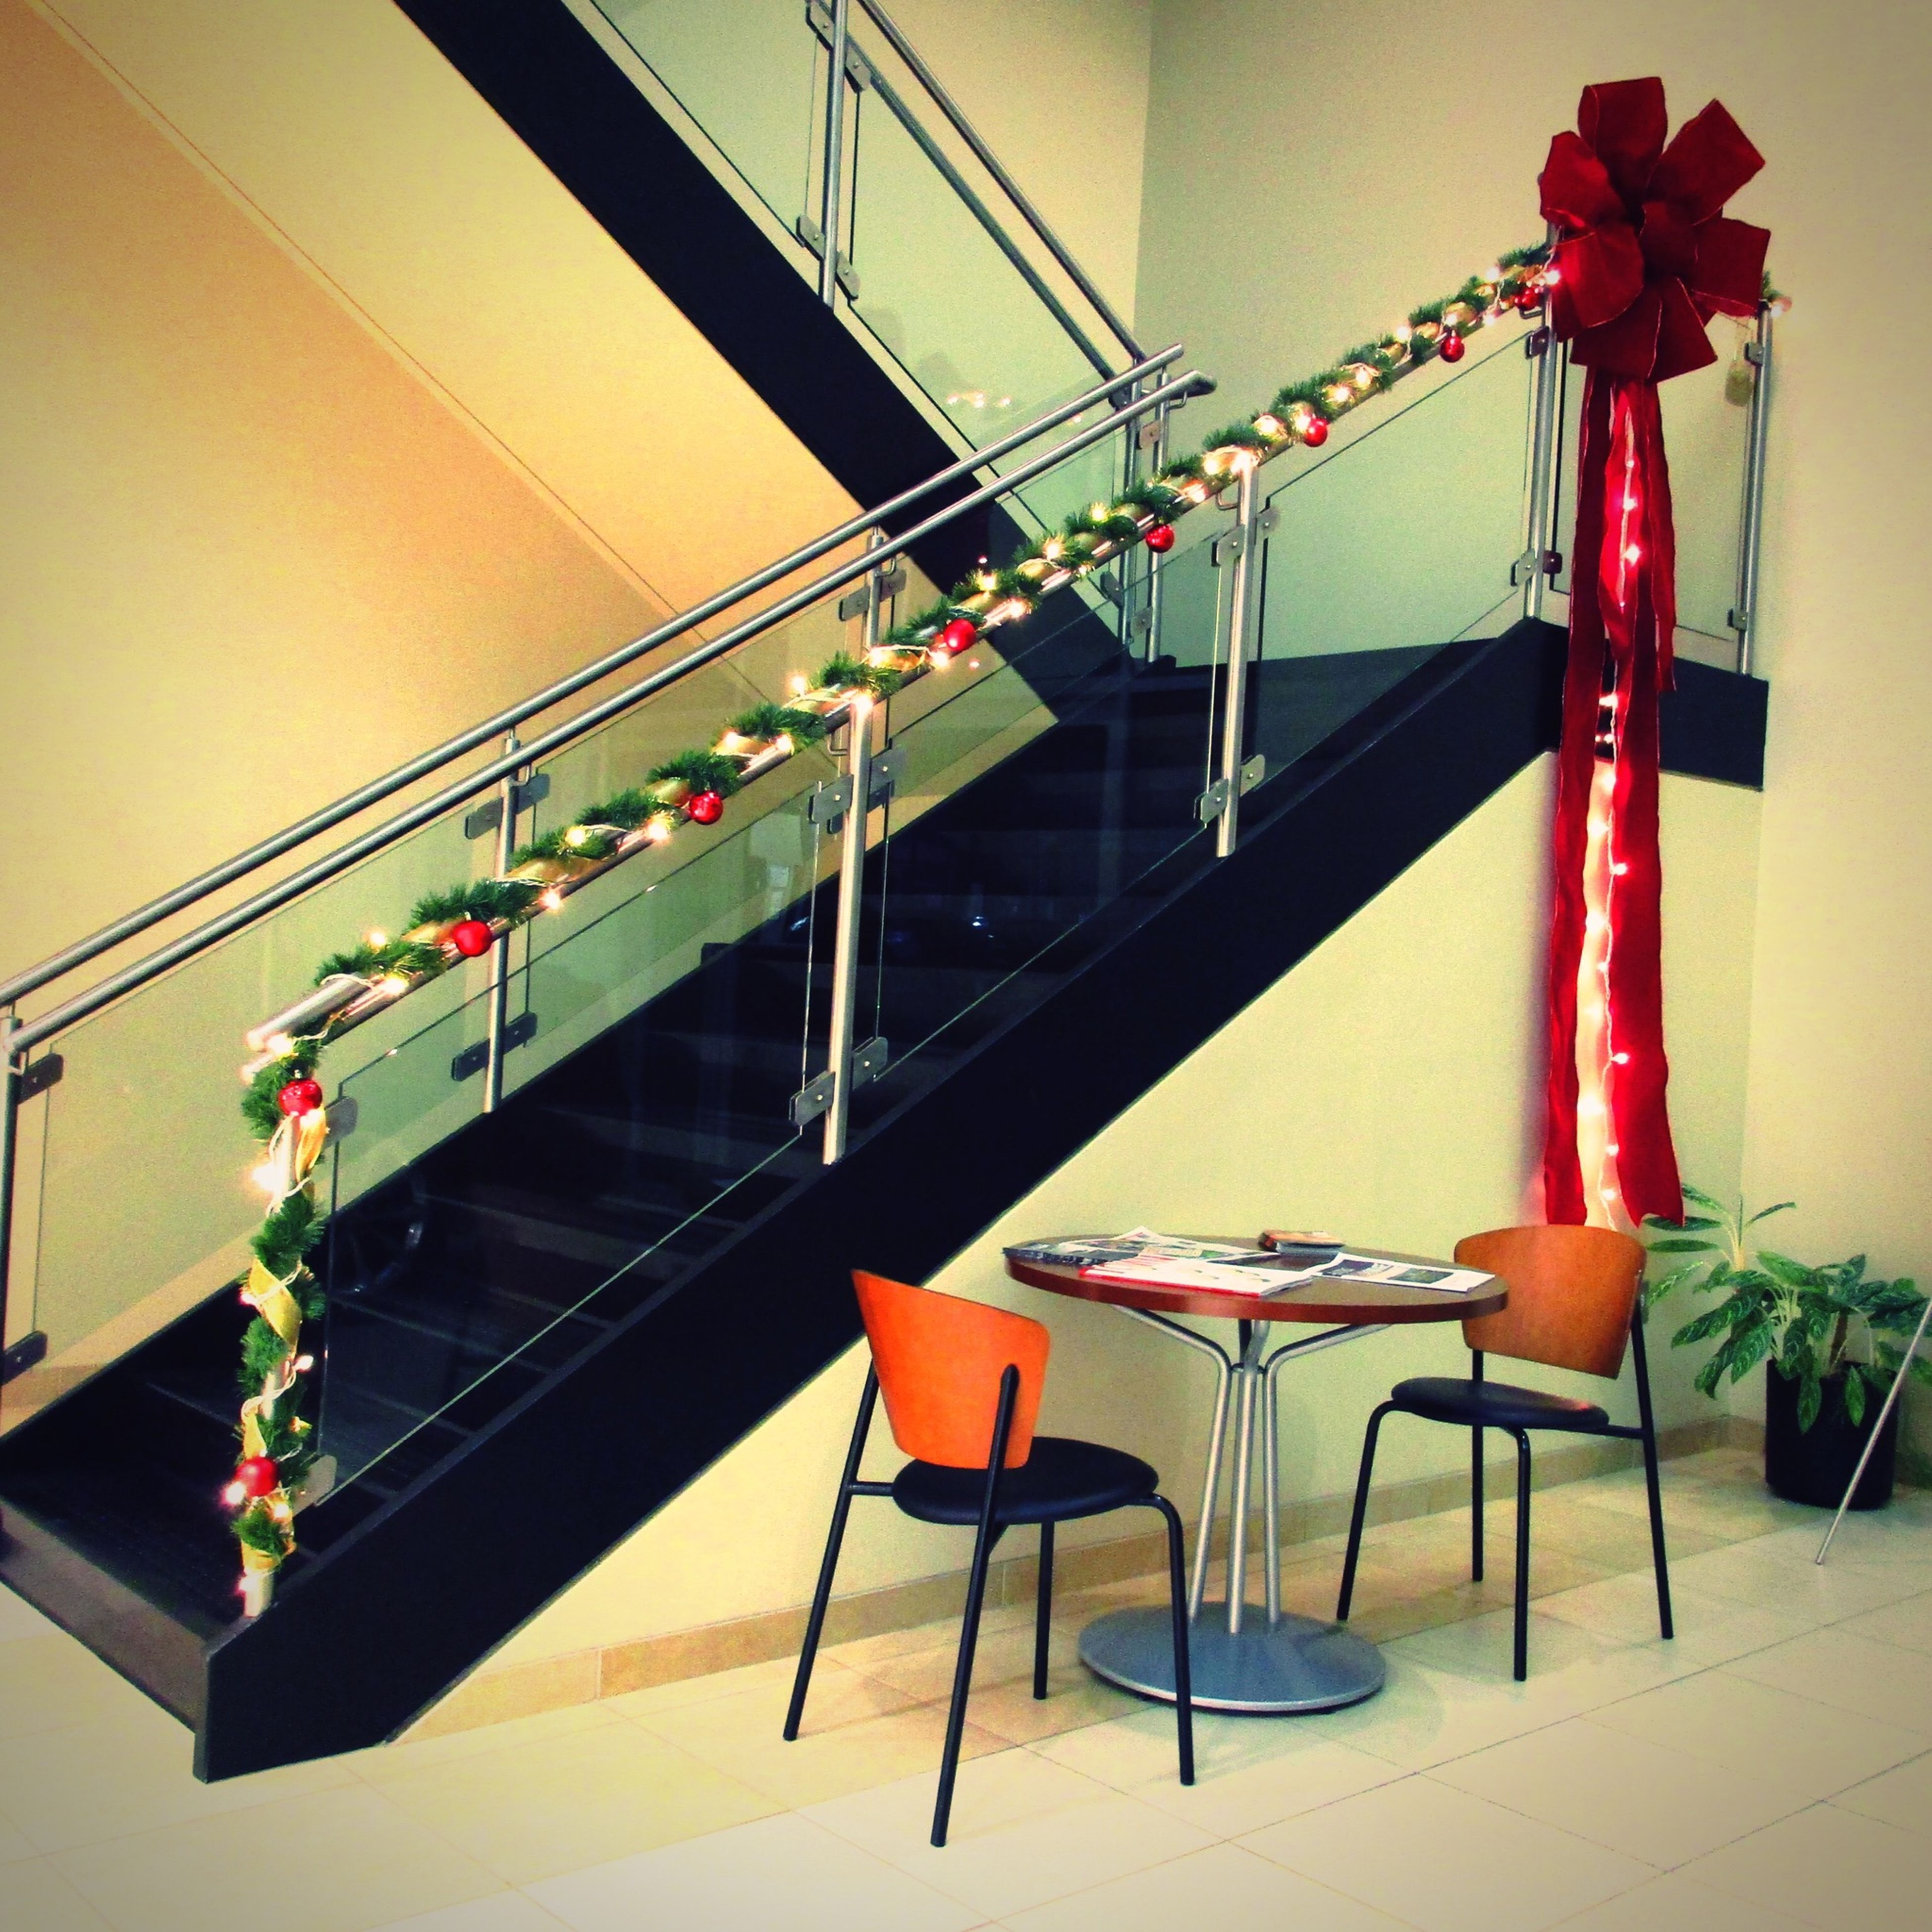 indoors, absence, chair, empty, steps, steps and staircases, railing, staircase, seat, built structure, ceiling, architecture, no people, furniture, low angle view, hanging, flooring, metal, wall - building feature, table